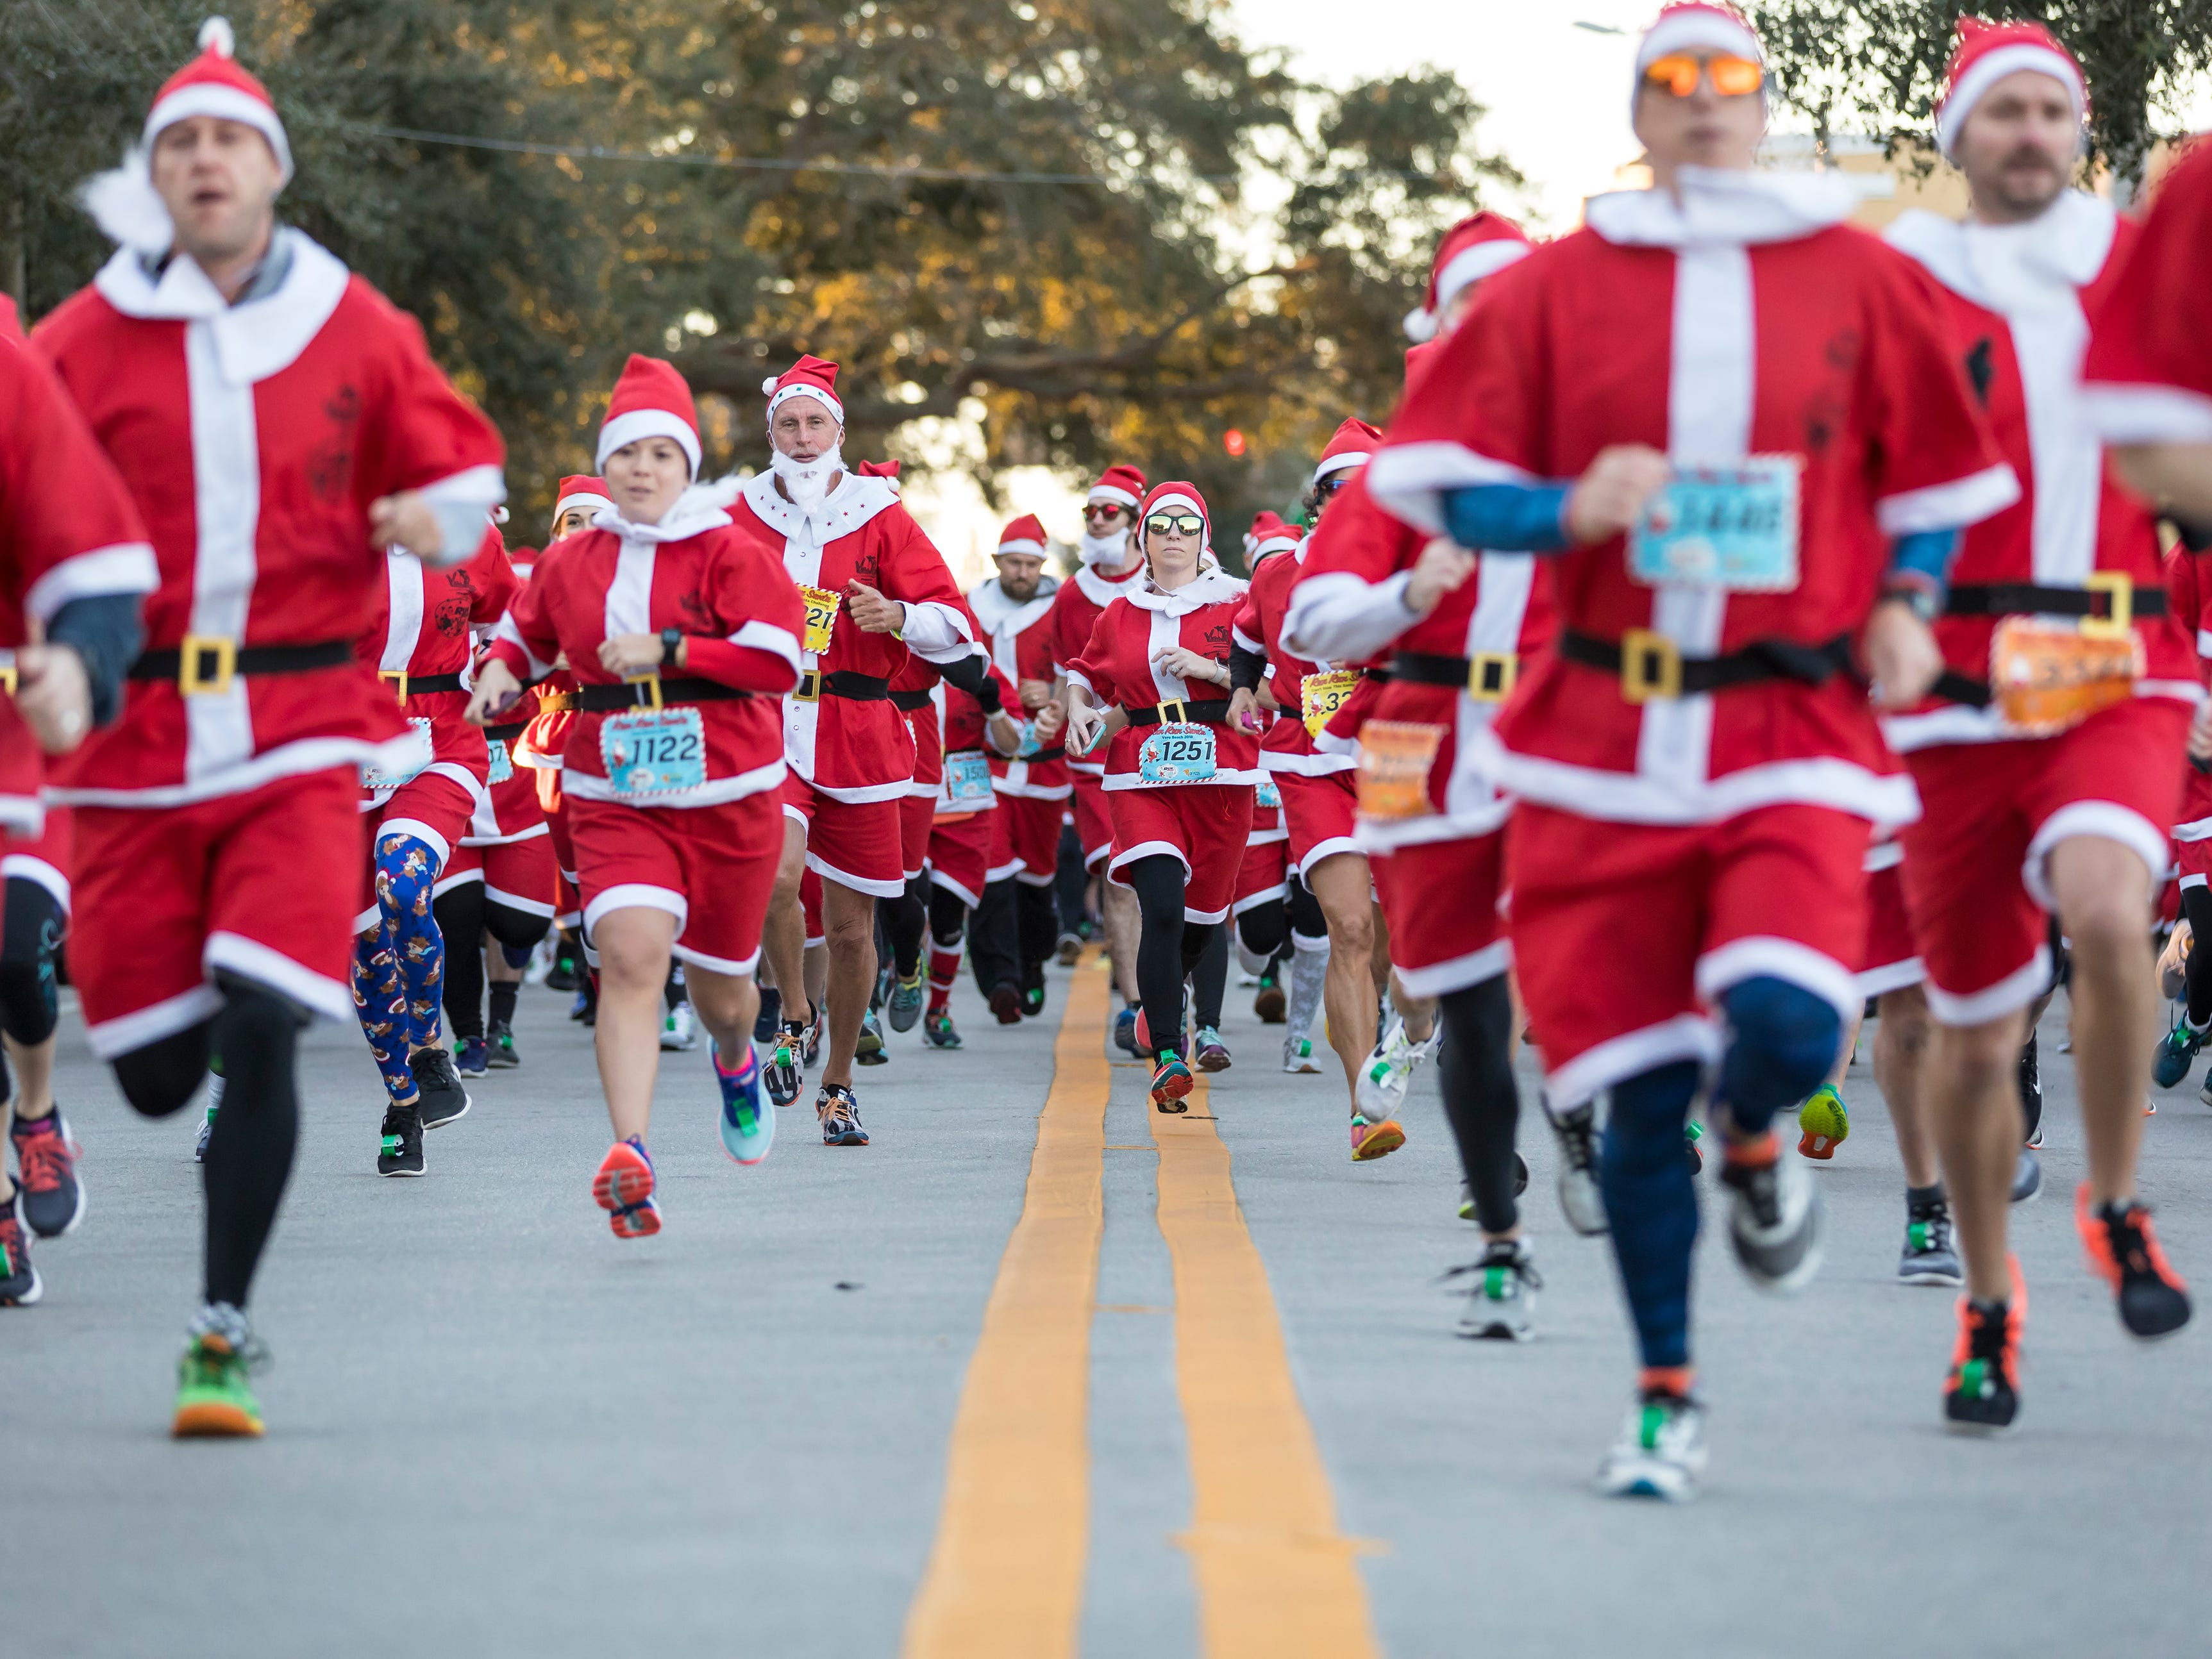 "Hundreds of runners donned Santa Claus outfits Sunday, Dec. 23, 2018, and took part in the second year of the Run Run Santa one-mile race through downtown Vero Beach. ""This actually started in Viera 3 years ago,"" said Brittany Streufert, race director. ""I grew up in Vero Beach, and we had such big success in Viera that we wanted to try it in Vero Beach, too. We had over 400 registered (last year). This year we had over 600."" Money raised at the event was collected by the Power of Pizza Charities and will go to benefit Indian River Healthy Start Coalition's Babies and Beyond."